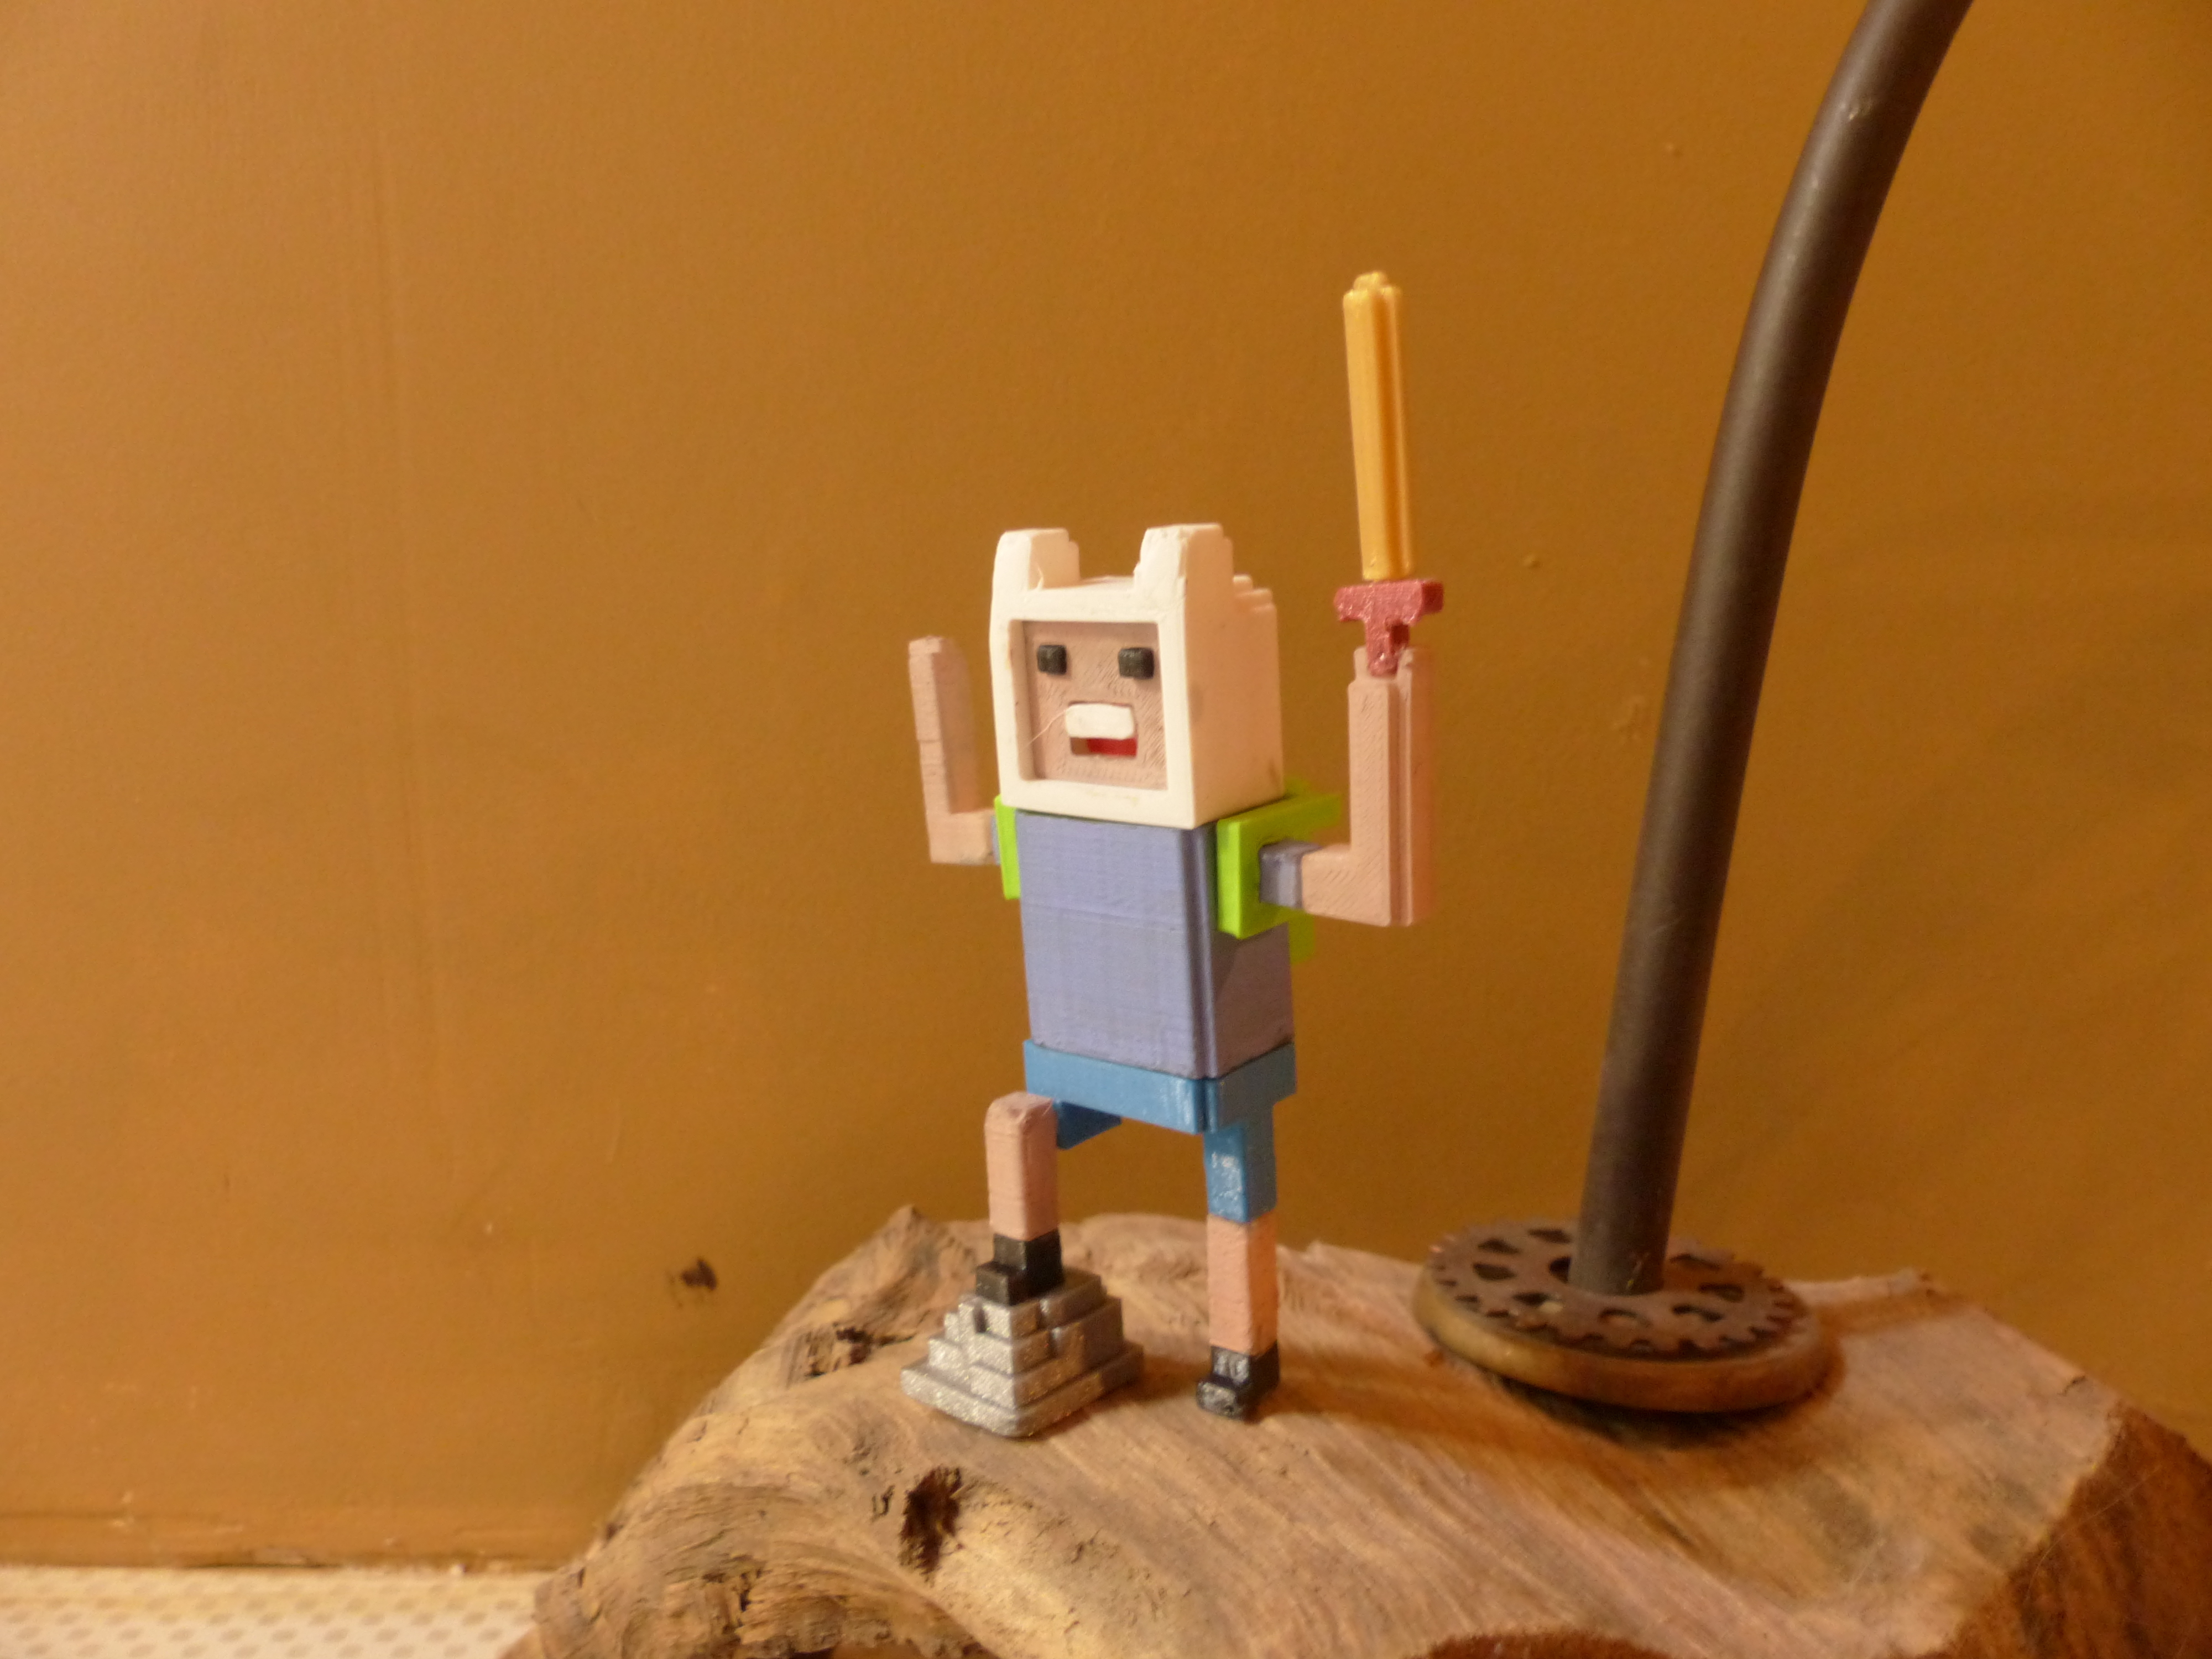 P1020896.JPG Download free STL file Voxel-style «Adventure Time» character figures • 3D print design, conceptify